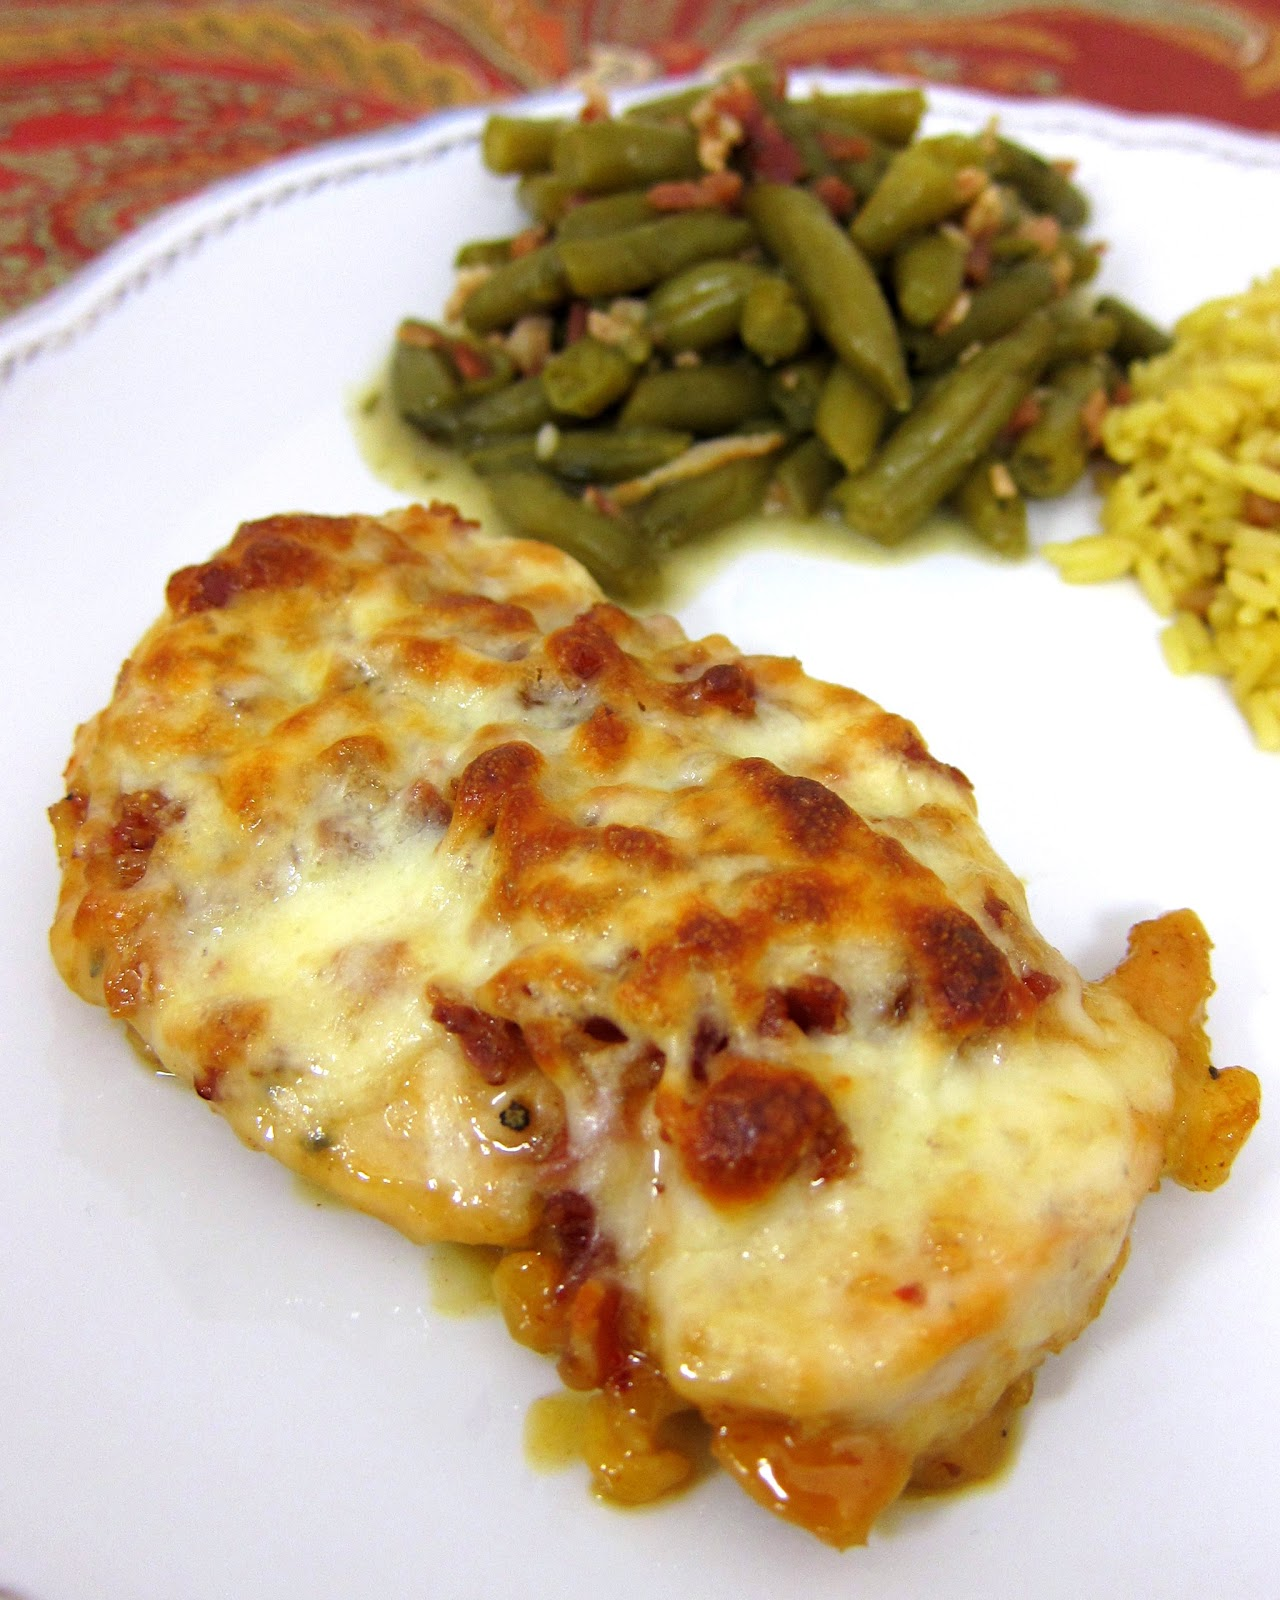 Cheesy Honey Mustard Chicken - TO DIE FOR!!! Chicken topped with honey, mustard, lemon juice, paprika, lemon pepper, bacon, Mozzarella and baked. Ready in under 30 minutes. We ate this two nights in a row. It is that good. Even picky eaters love this!